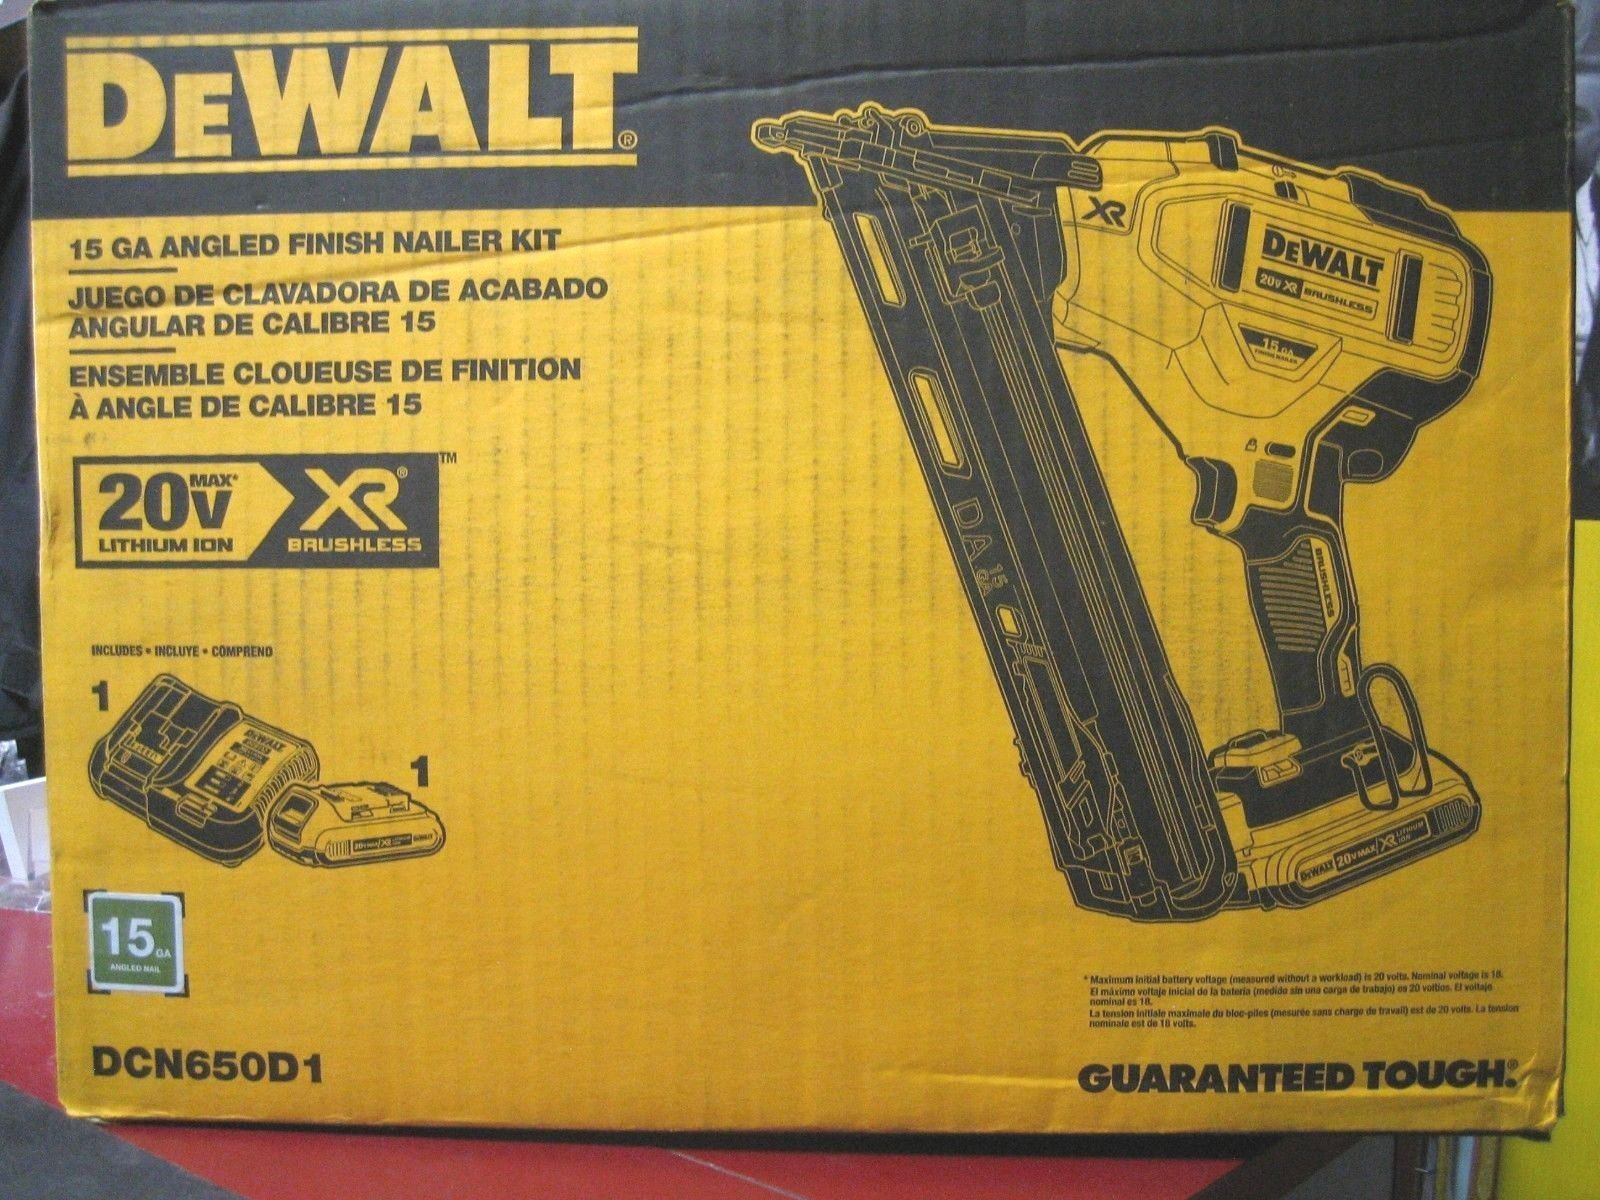 Nail And Staple Guns 122828 New Dewalt Dcn650d1 15 Ga Angled Finish Nailer Kit Buy It Now Only 290 On Ebay Dewalt Nailer Staple Guns